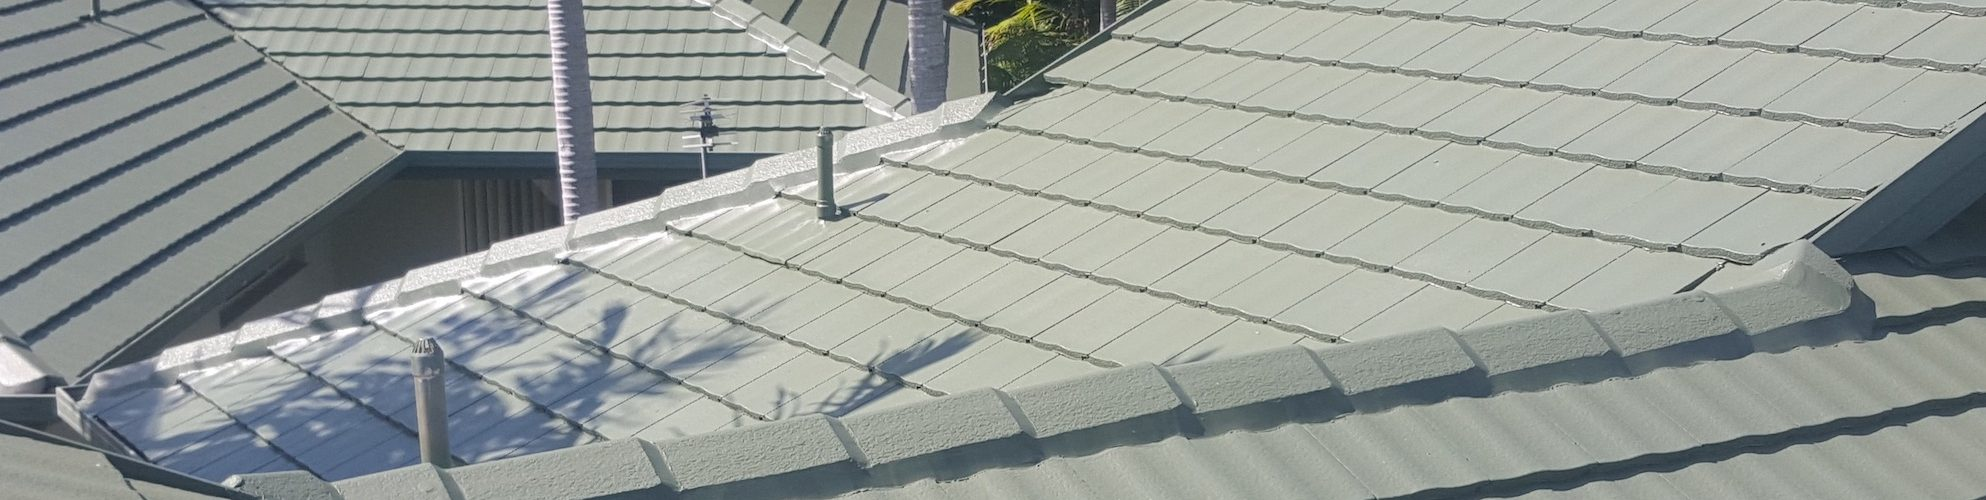 Roof repointing by coffs harbour roof repointing specialists Coffs Coast Roof Tiling.